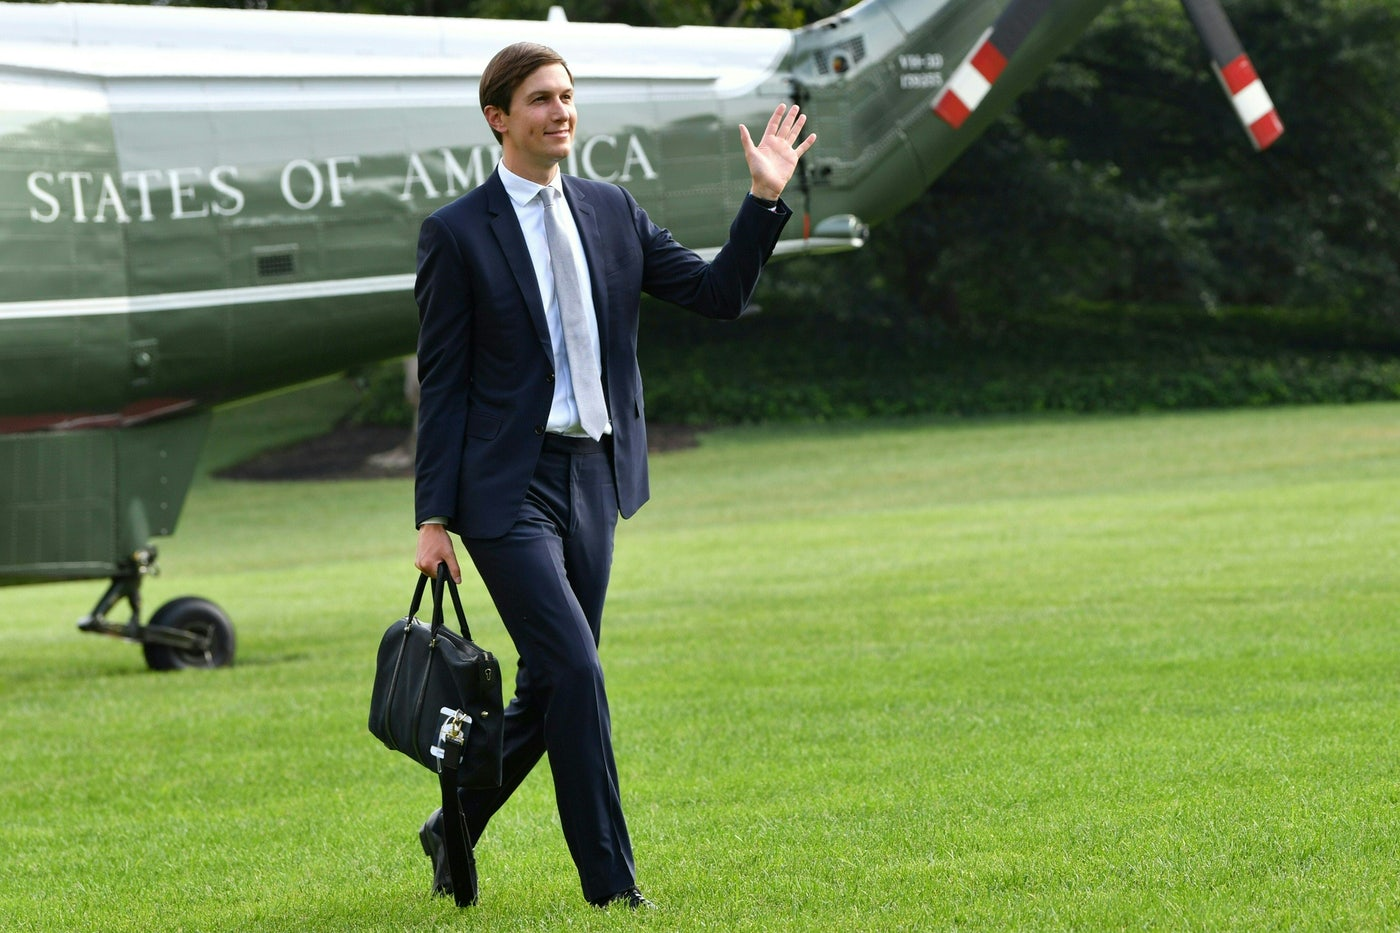 Jared Kushner waves as he returns to the White House